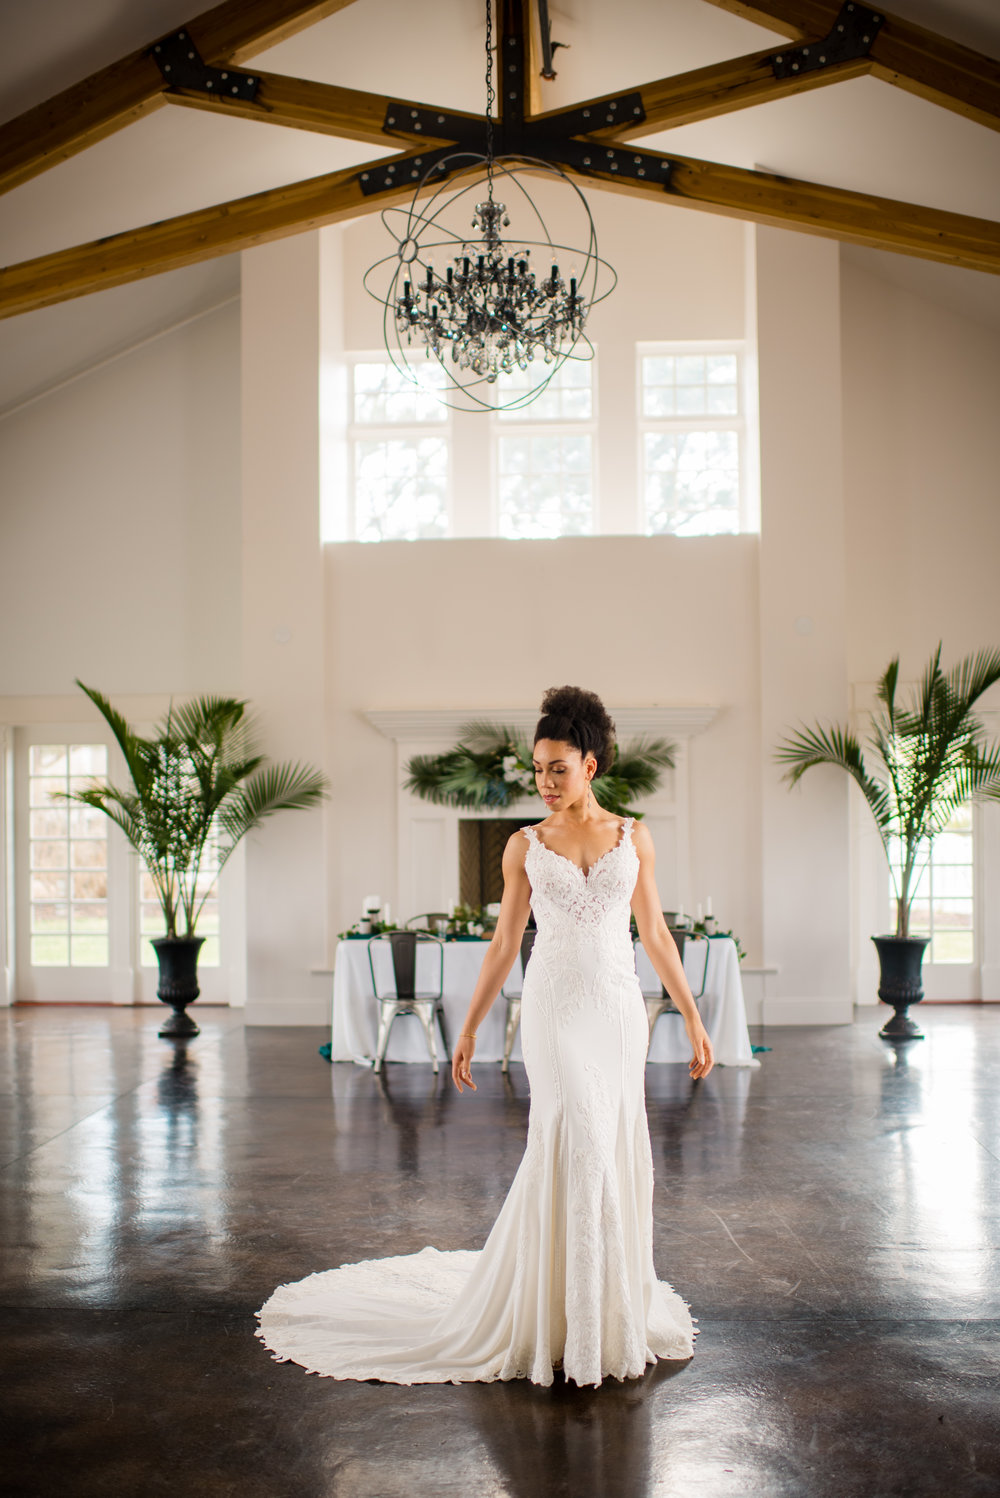 She's so graceful in this Martina Liana gown.